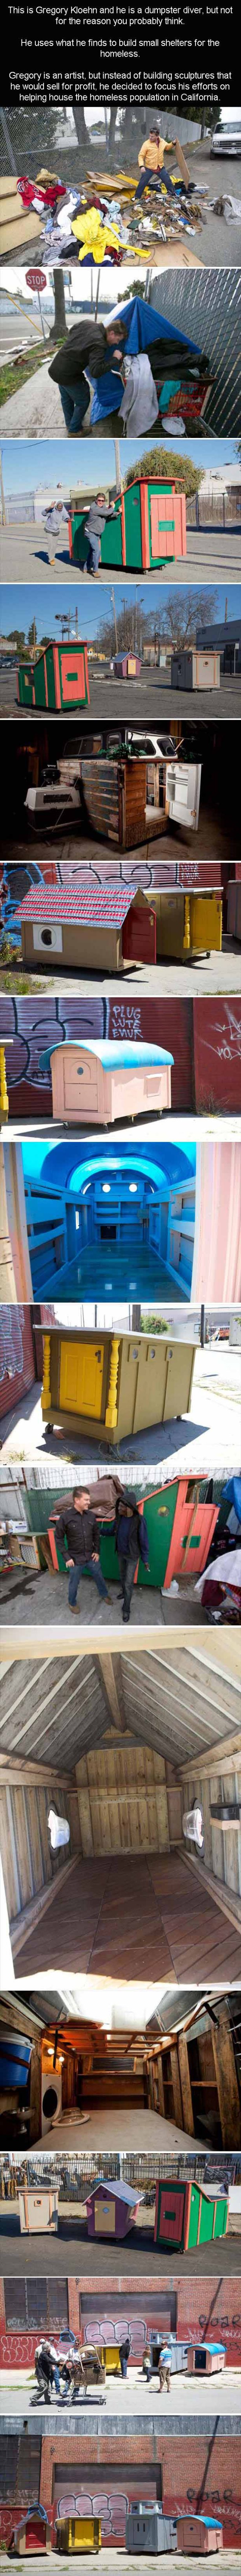 1 homeless shelter made from